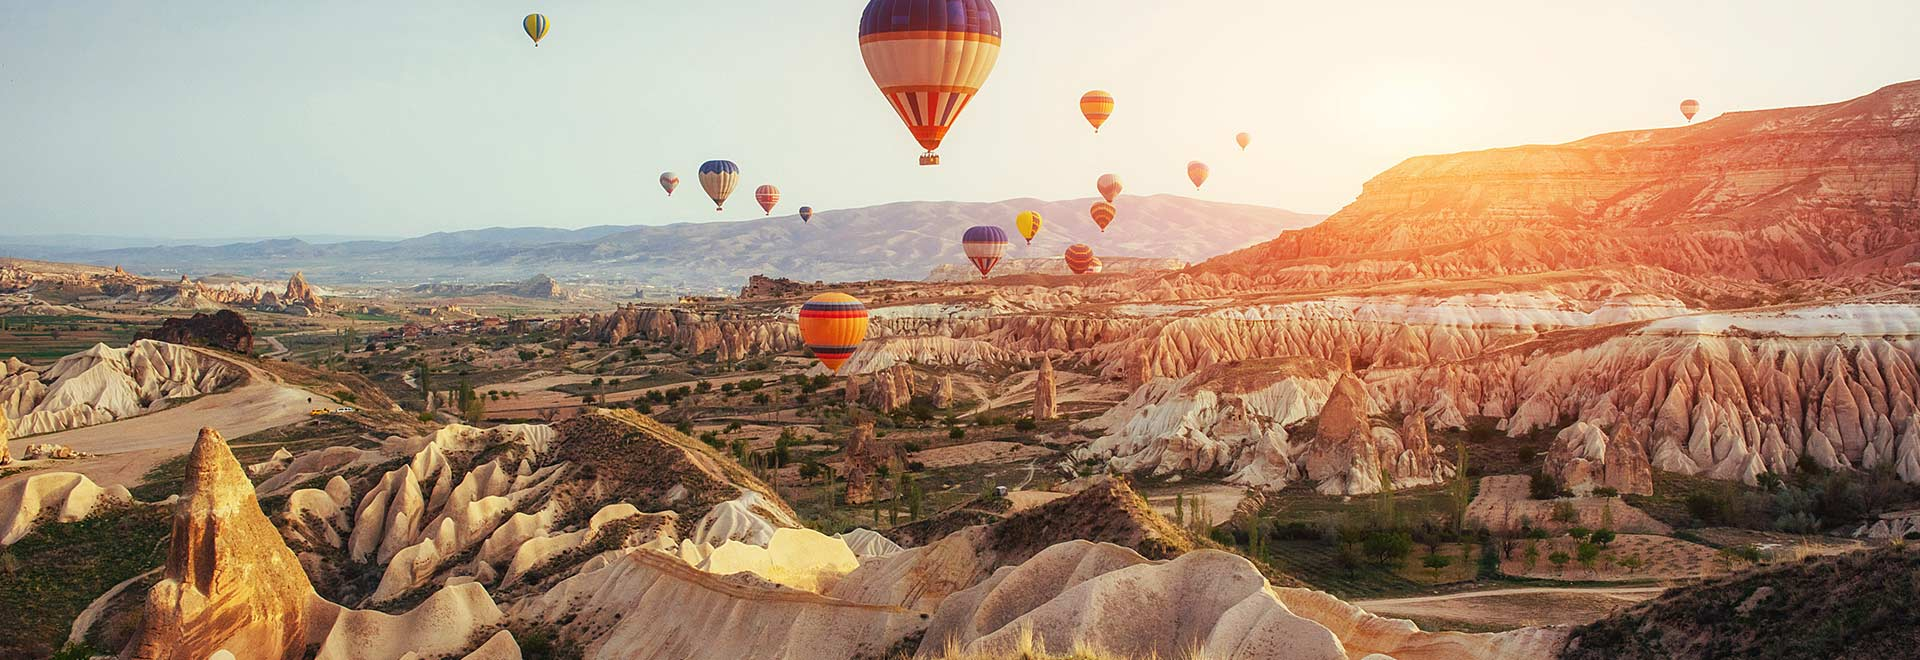 Europe Wings Over Greece Turkey Cappadocia MH